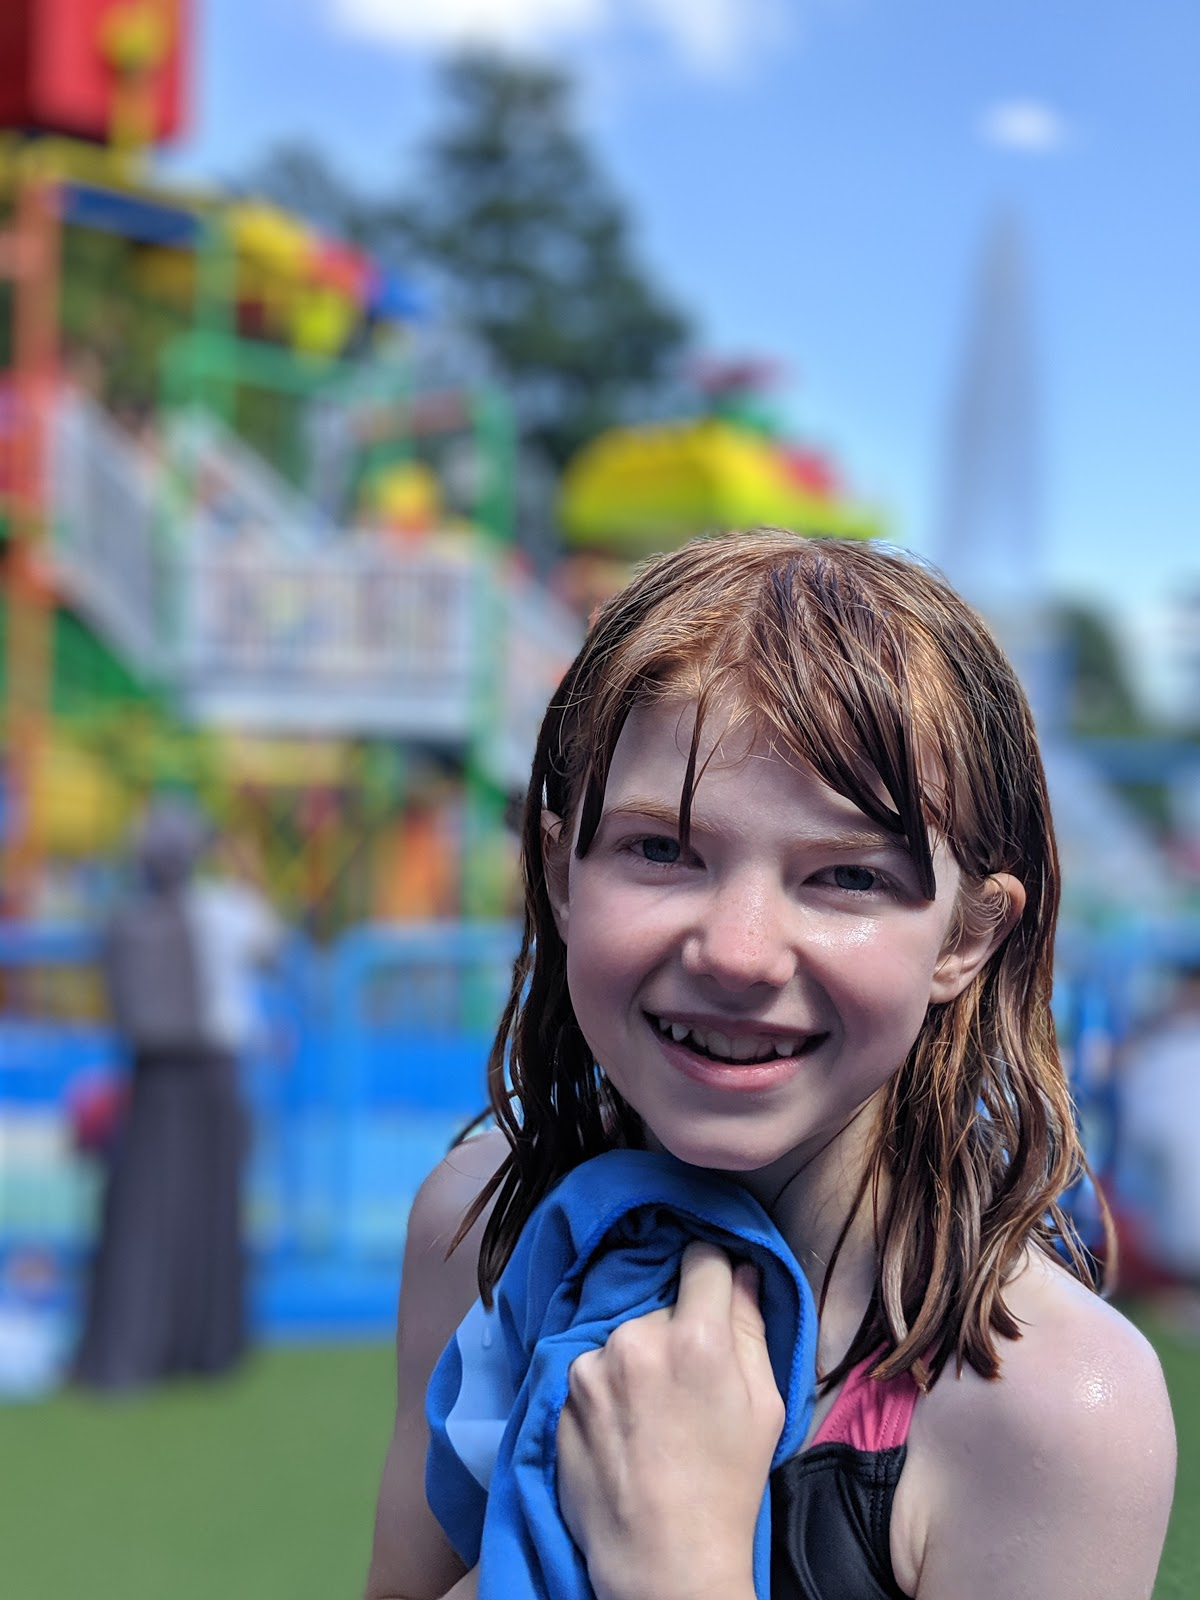 Exploring the Southern Merlin Theme Parks with Tweens  - LEGOLAND drench towers